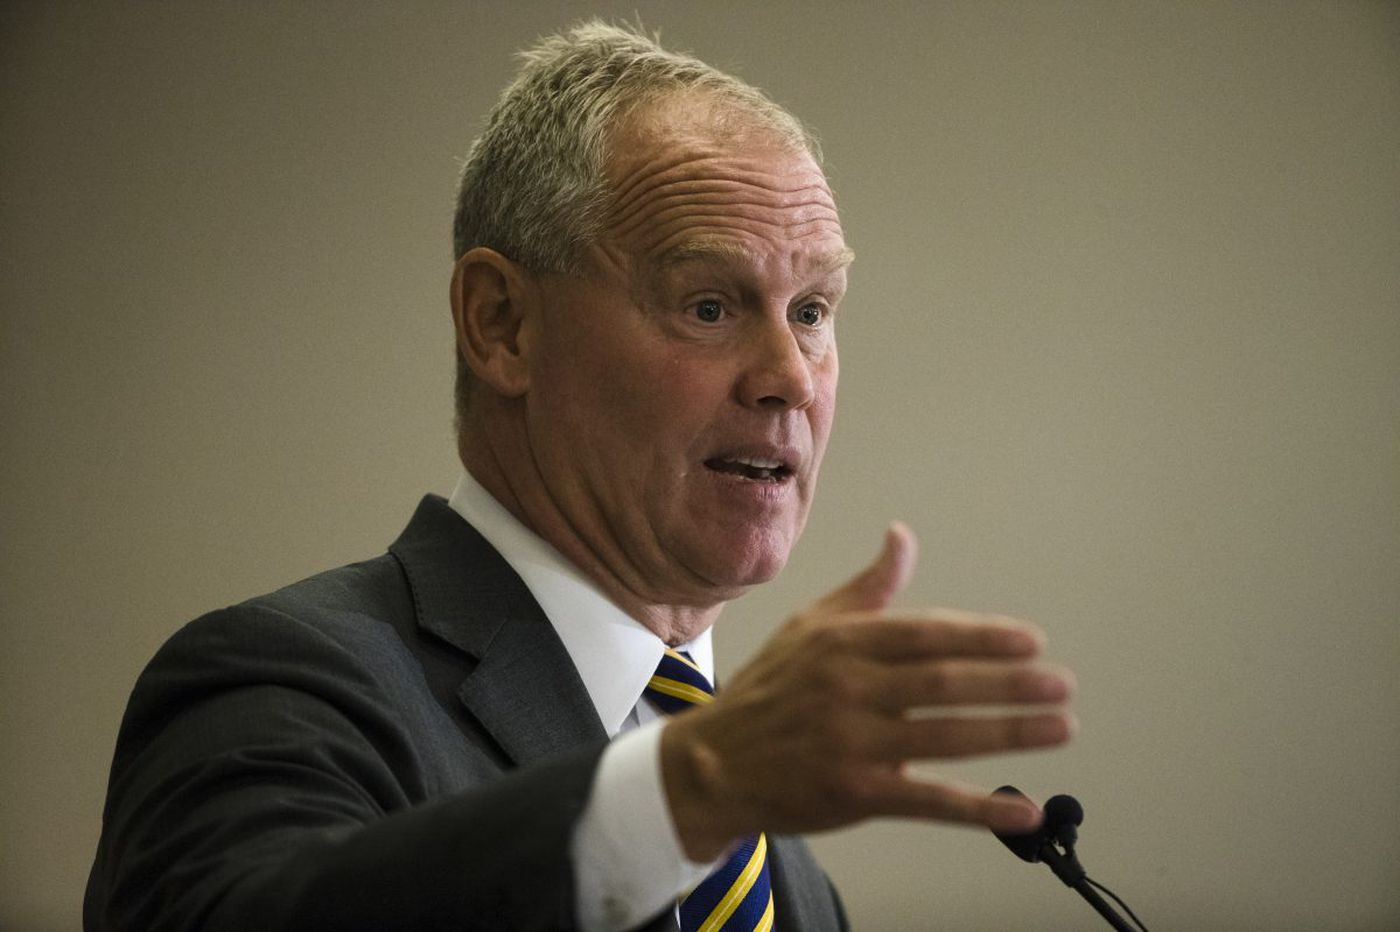 Pa. House Speaker Mike Turzai to run for governor